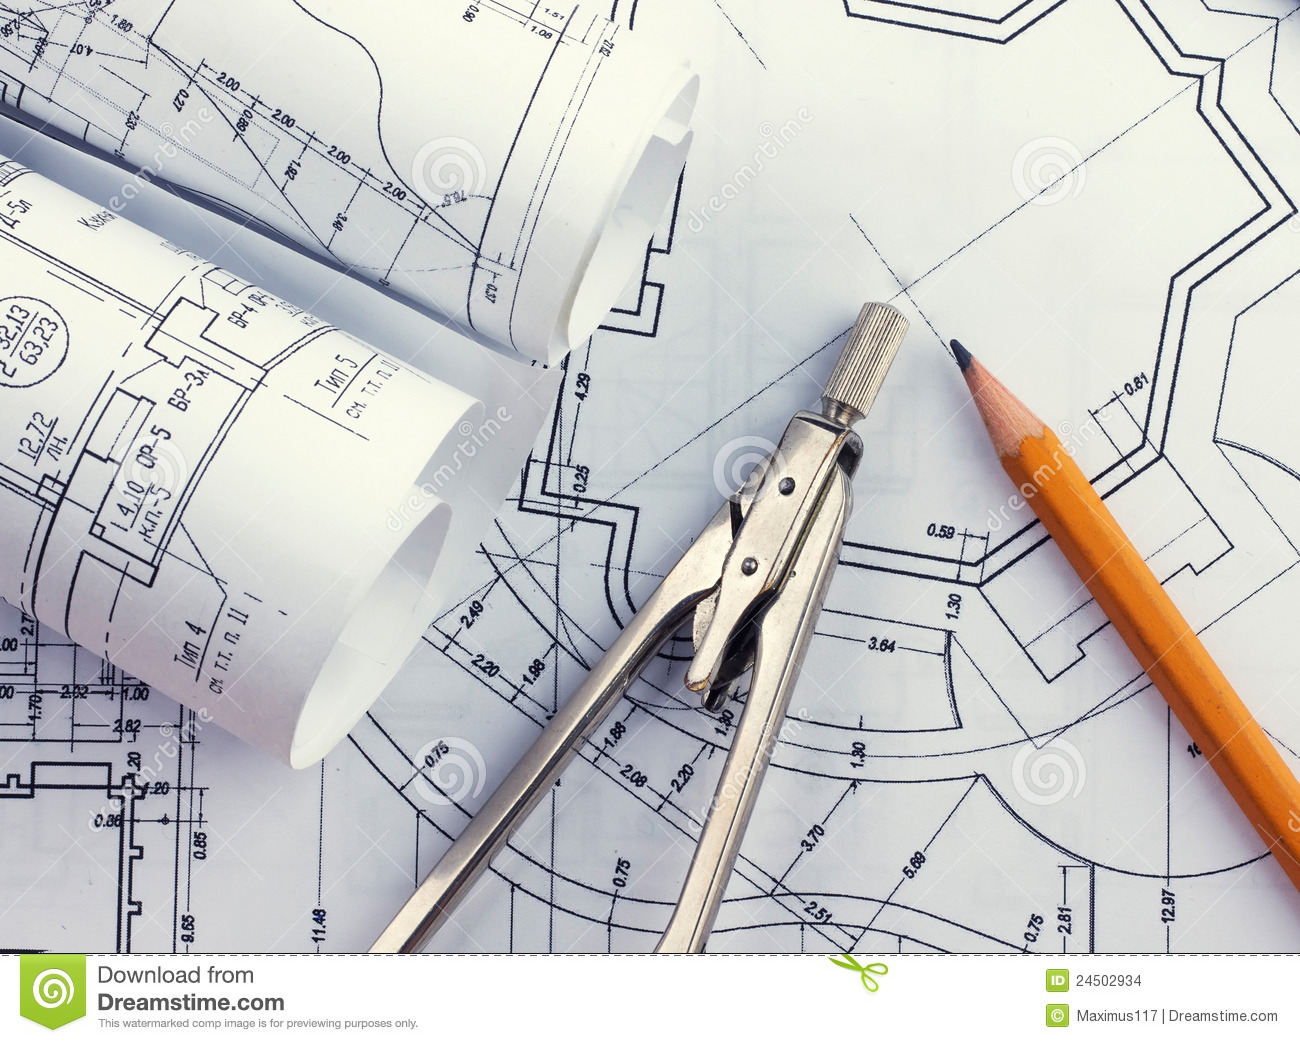 Development of architectural blueprints stock images for Architecture blueprint